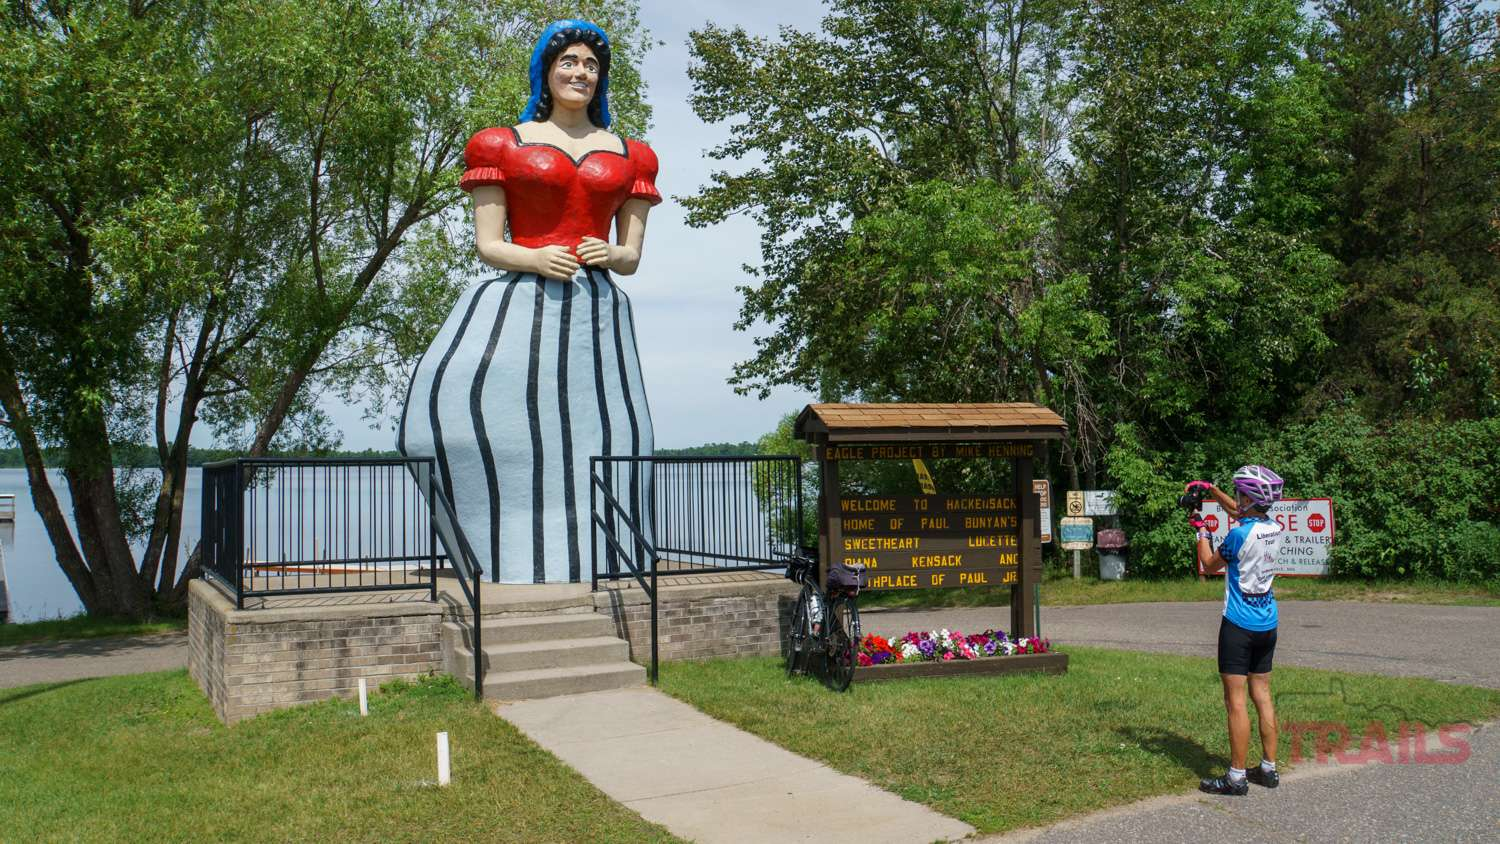 A woman takes a photo of the Lucette statue in Hackensack, MN